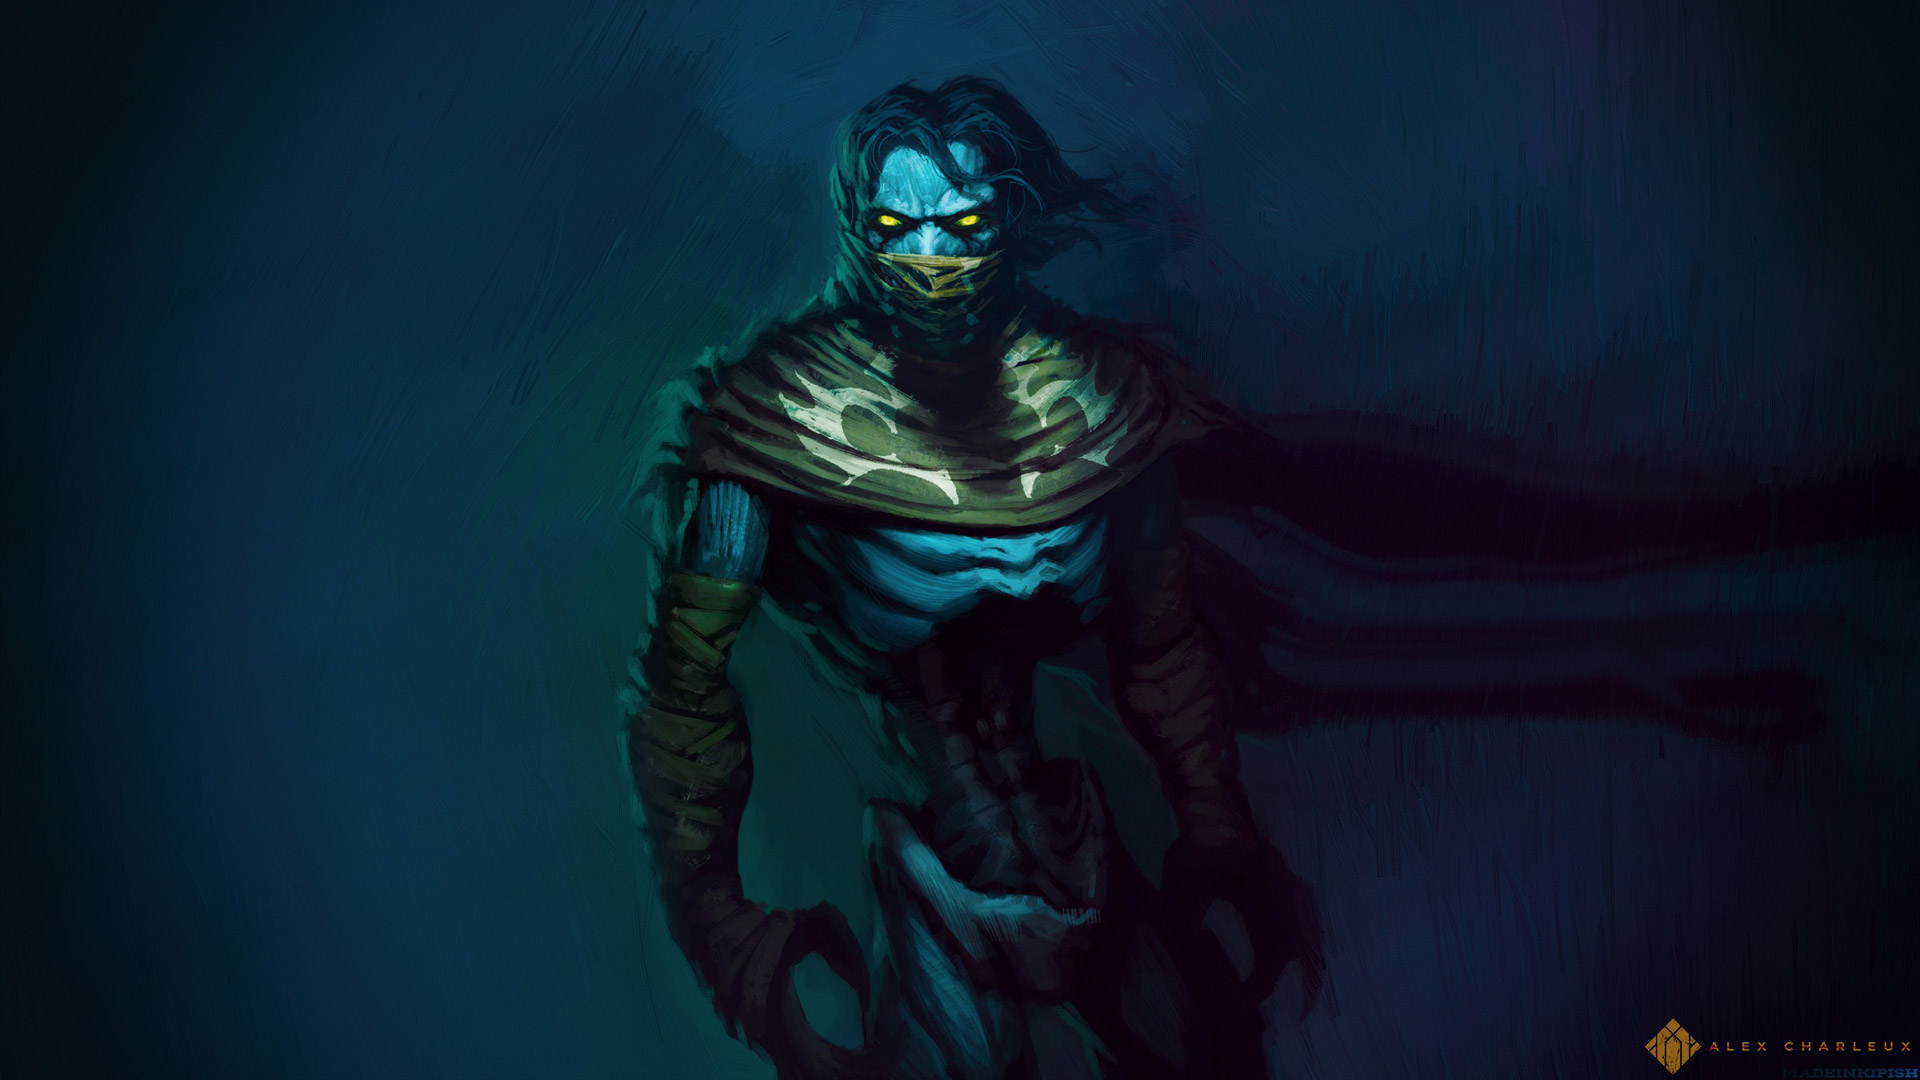 Free Legacy of Kain: Soul Reaver Wallpaper in 1920x1080